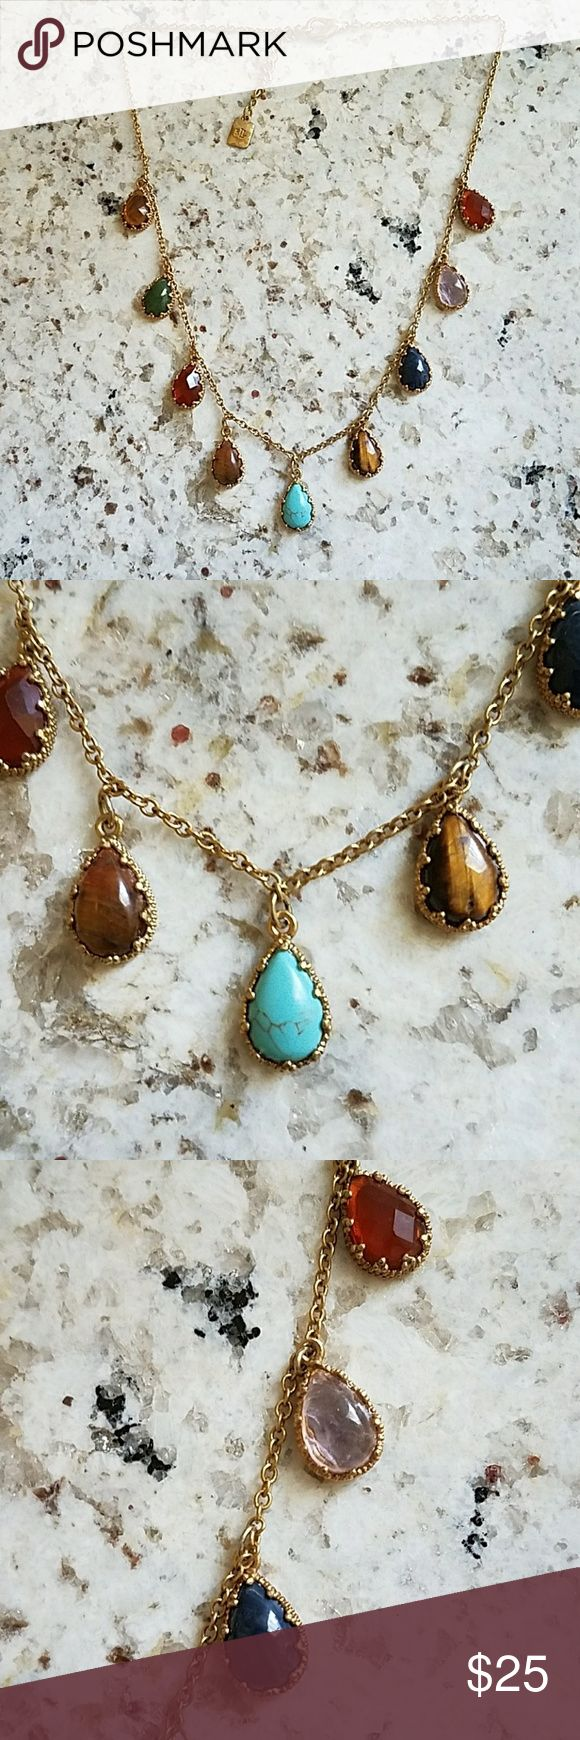 RALPH LAUREN semi-precious stone necklace Gold plated necklace with Turquoise, Lapis, Tigers Eye, Amethyst, Yellow Topaz, and other stones valued for their positive energy and healing properties. Never worn. Kept in jewelry box to preserve integrity of stones. Ralph Lauren RRL Jewelry Necklaces